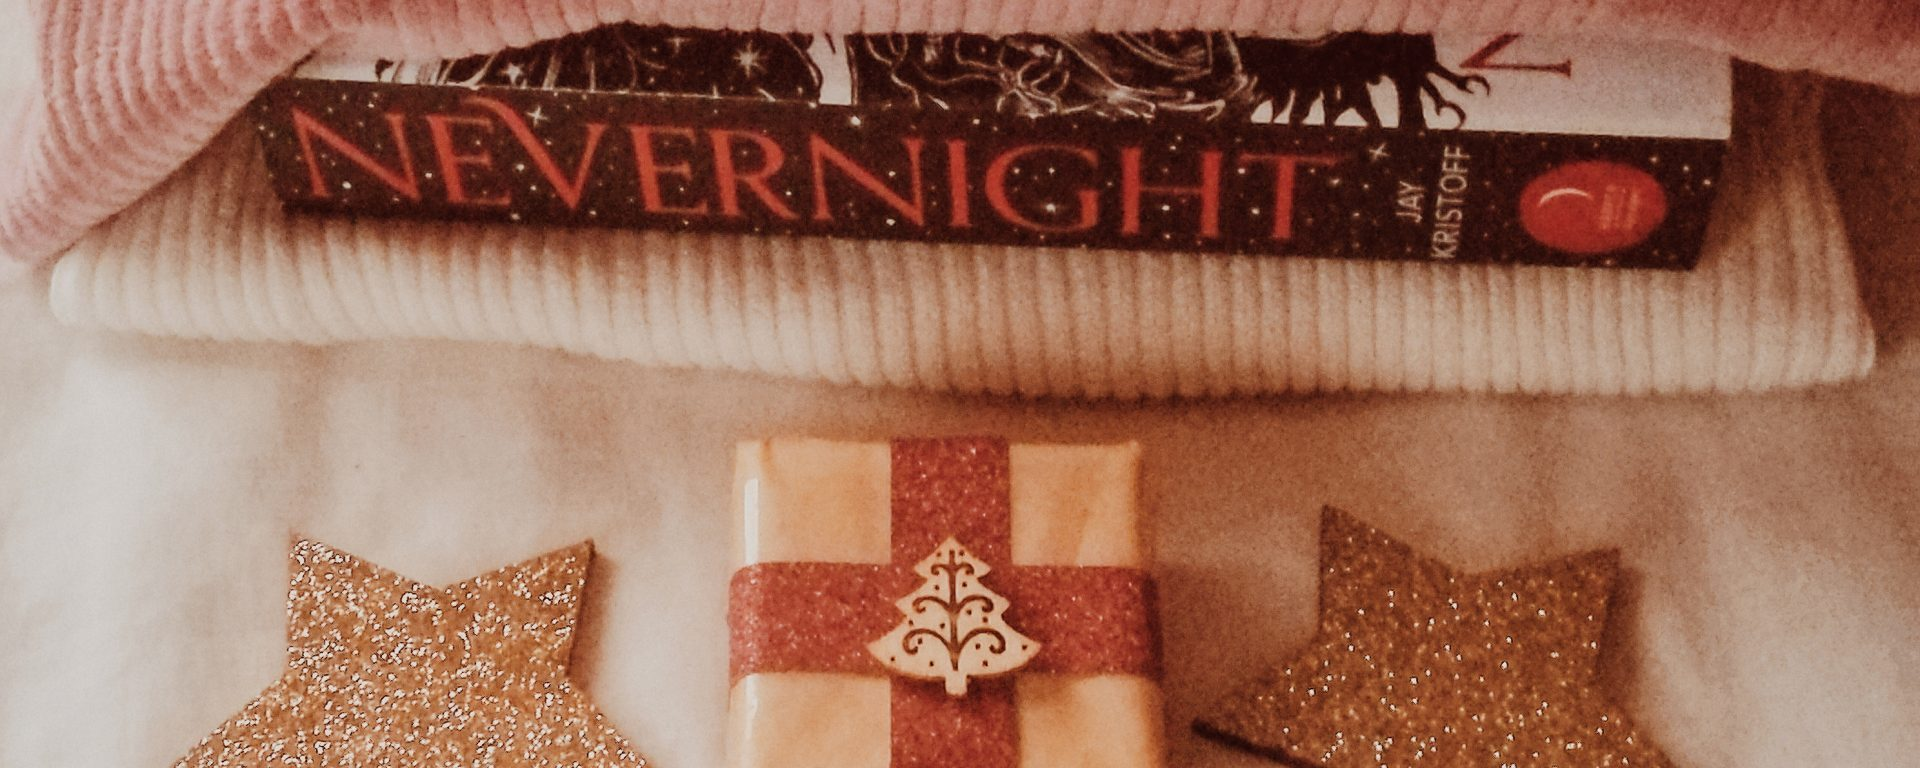 small wrapped present, books, stars and sweaters for blog post secret santa gift ideas